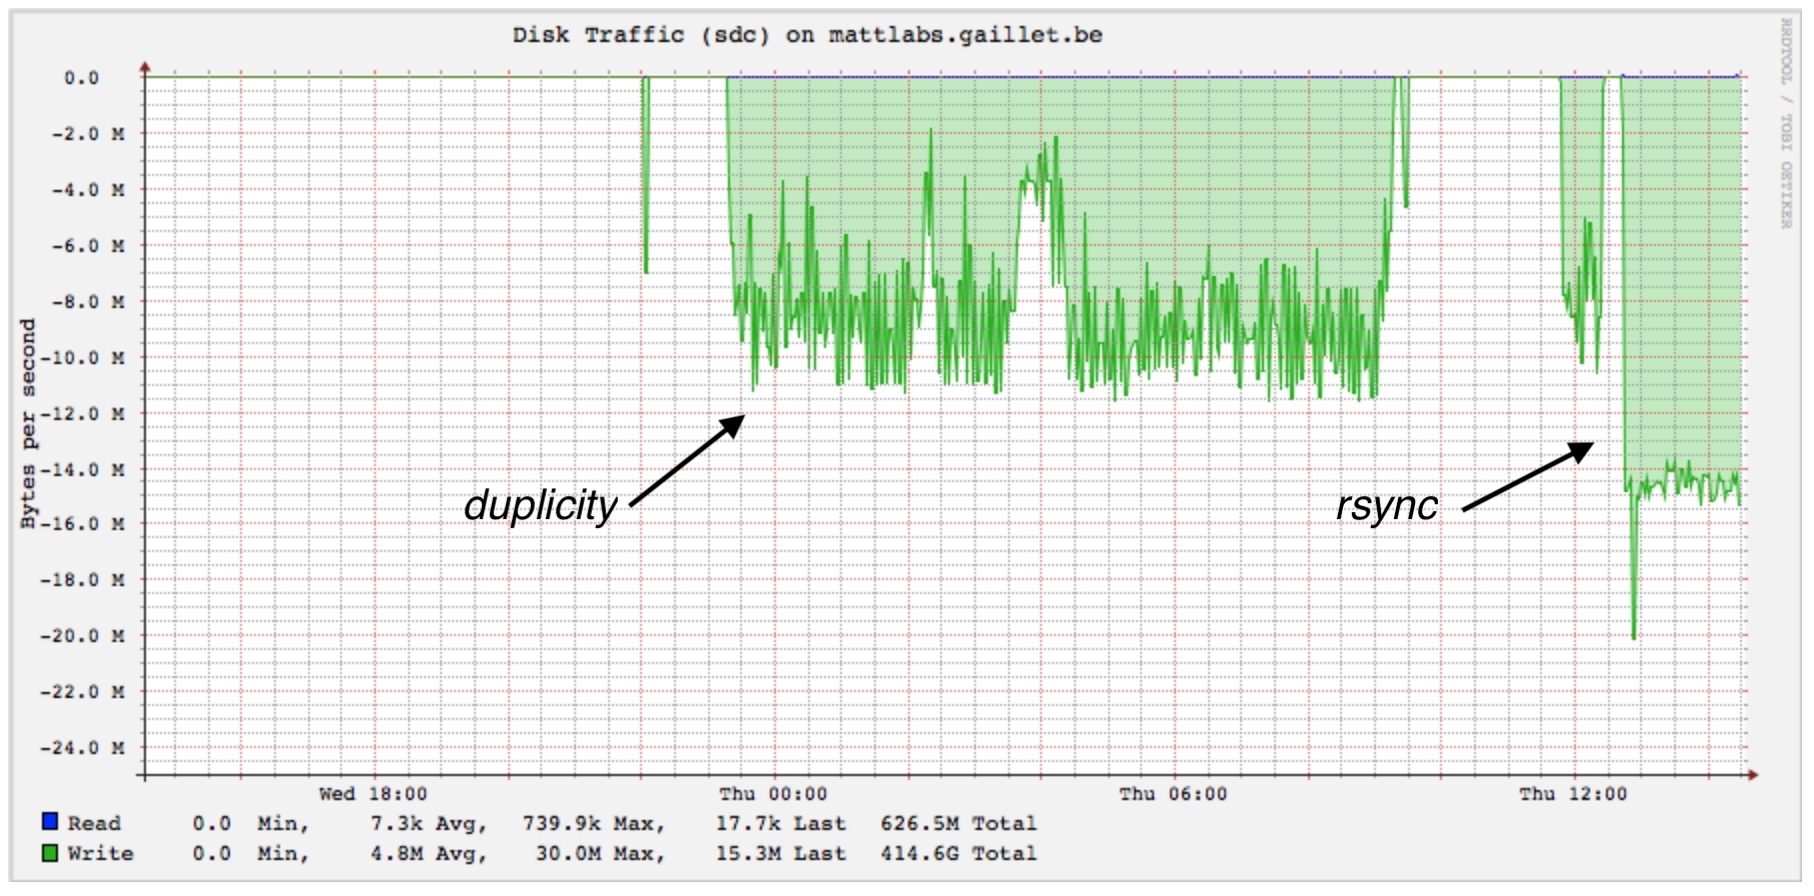 Duplicity replacement --> rsync Time machine-like backups